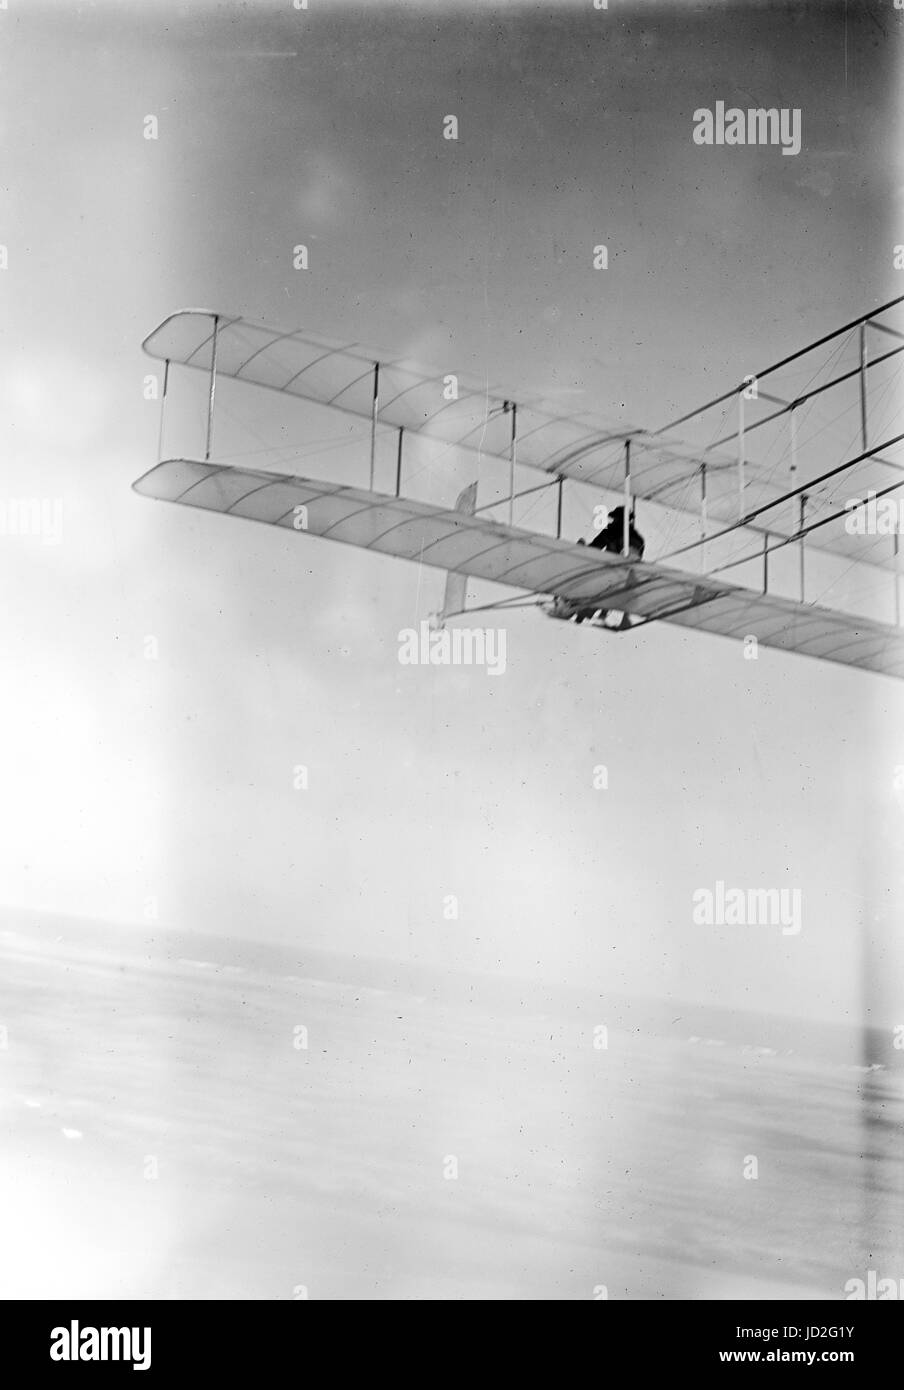 Three-quarter left rear view of glider in flight at Kitty Hawk, North Carolina. - Stock Image